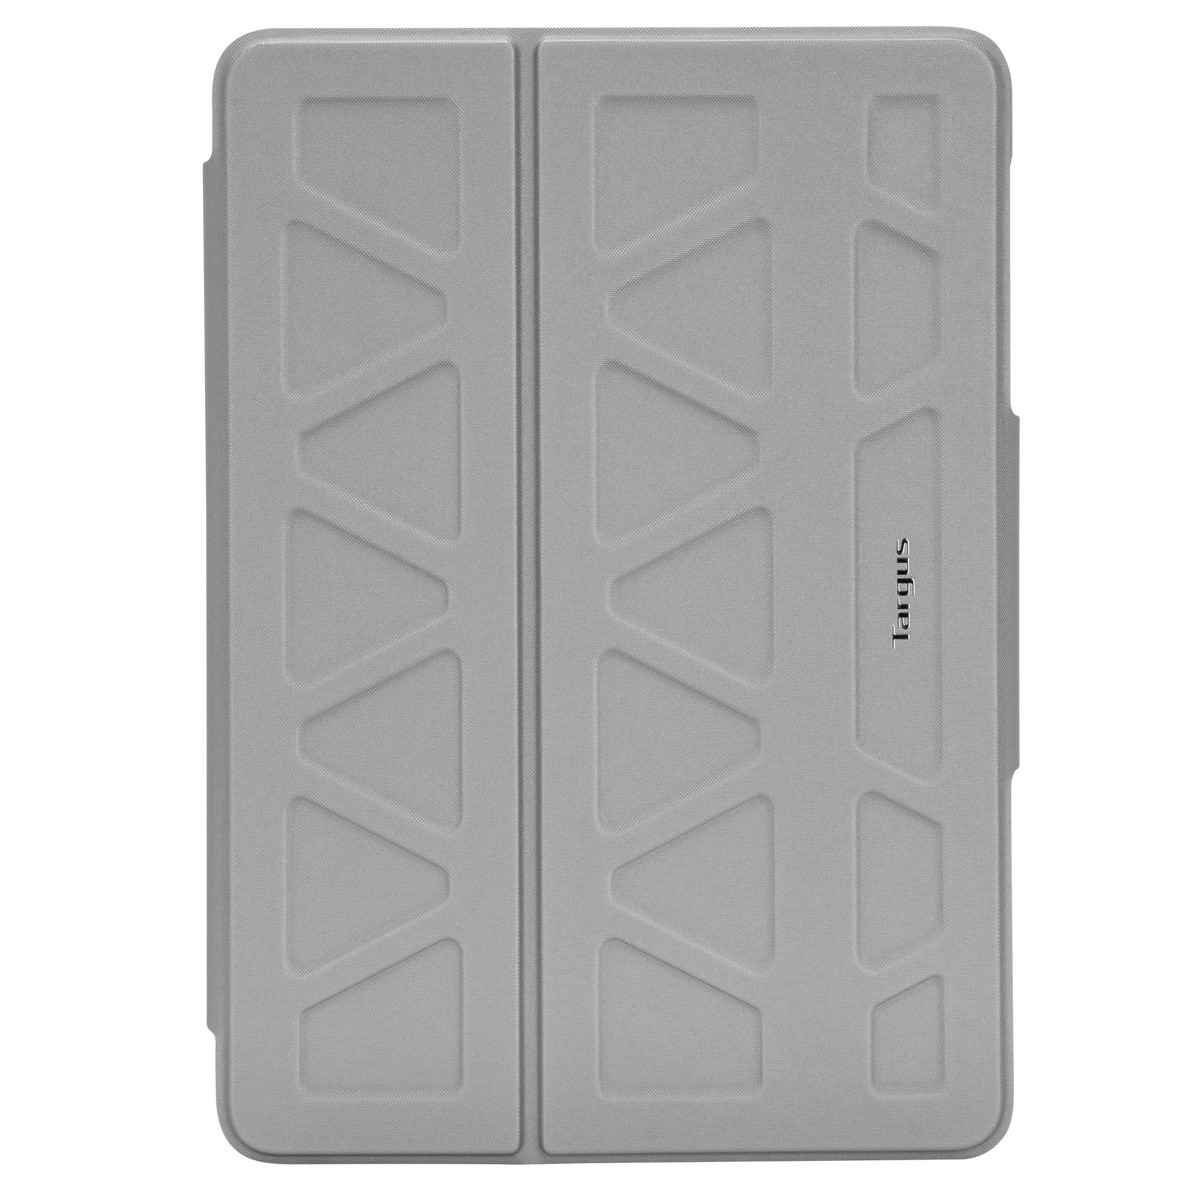 Targus: Pro-Tek case for iPad (7th Gen) 10.2-inch , iPad Air 10.5-inch and iPad Pro 10.5-inch - Silver image